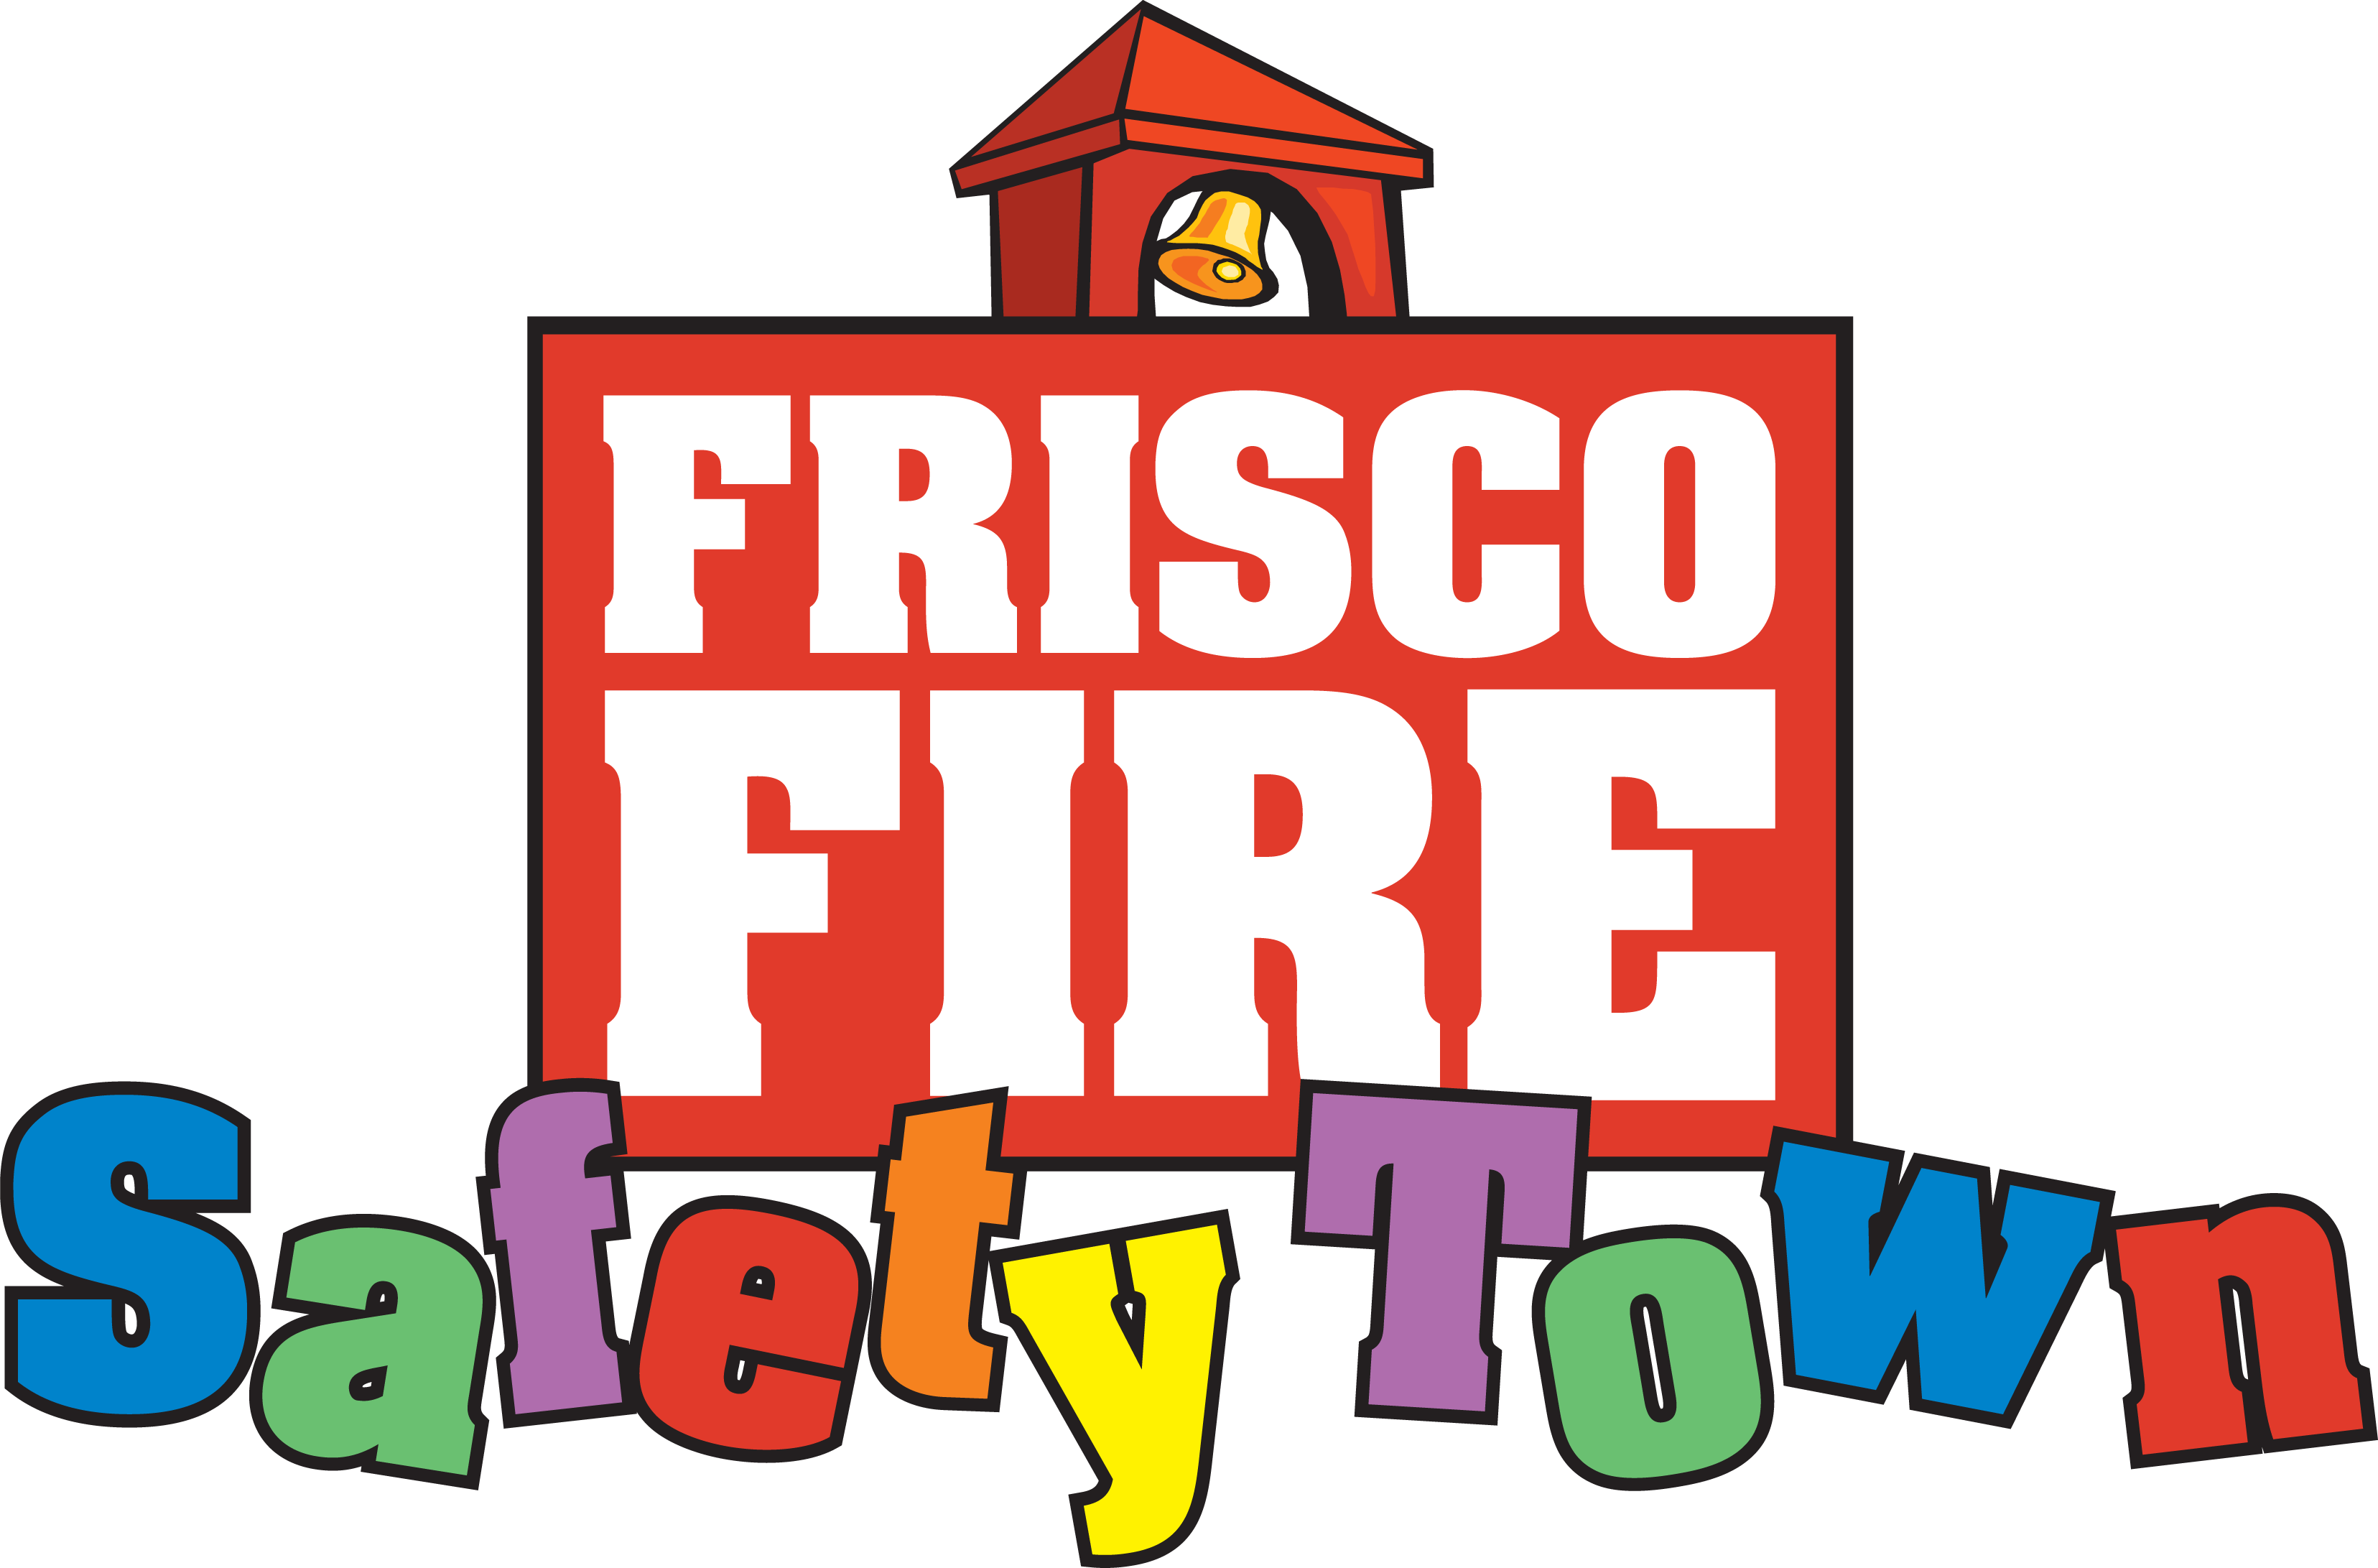 Frisco Fire Safety Town Logo